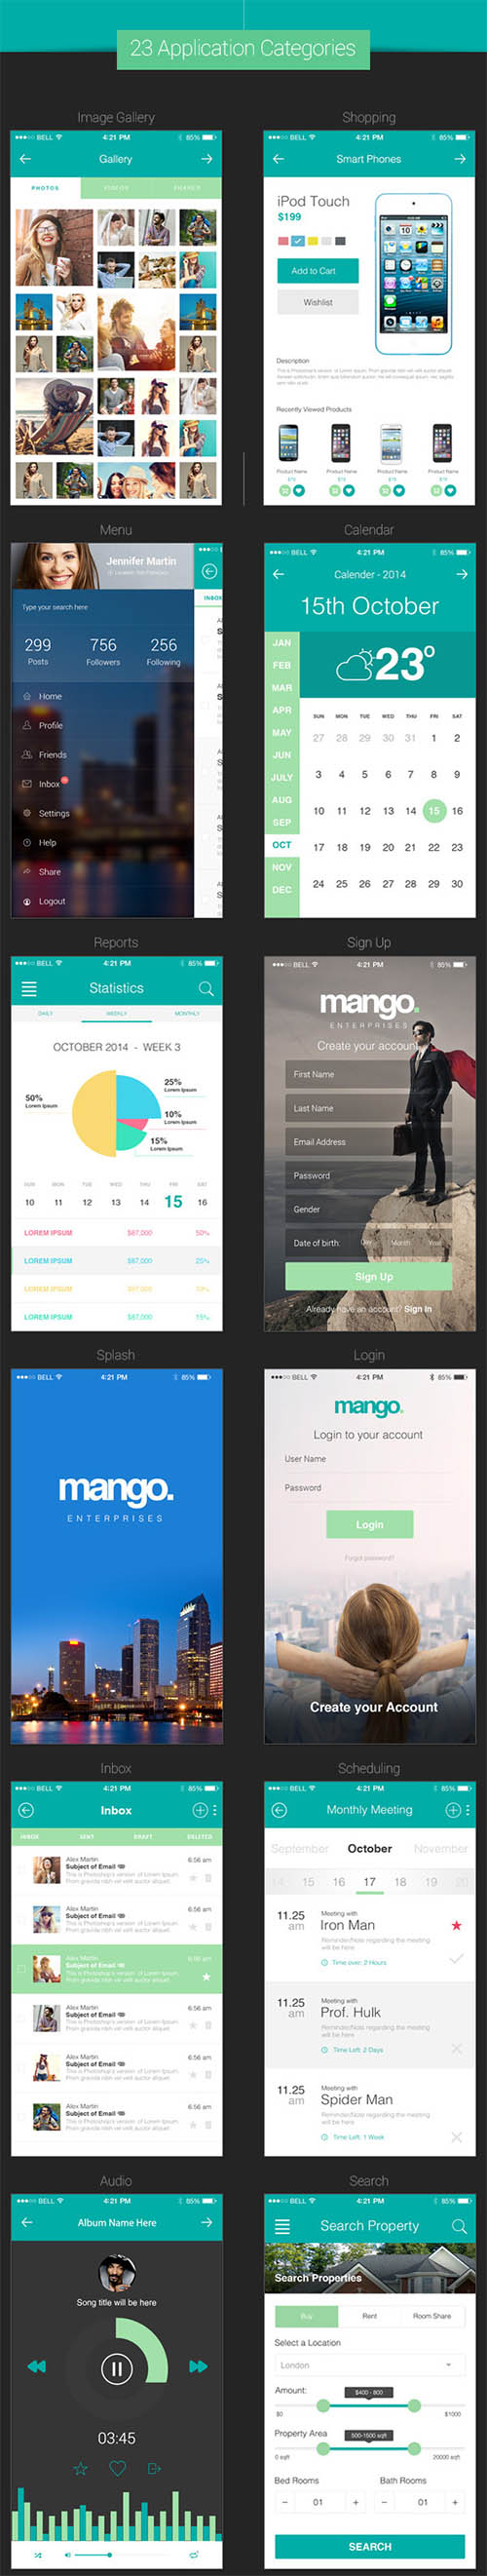 Pin on Mobile Apps UI UX